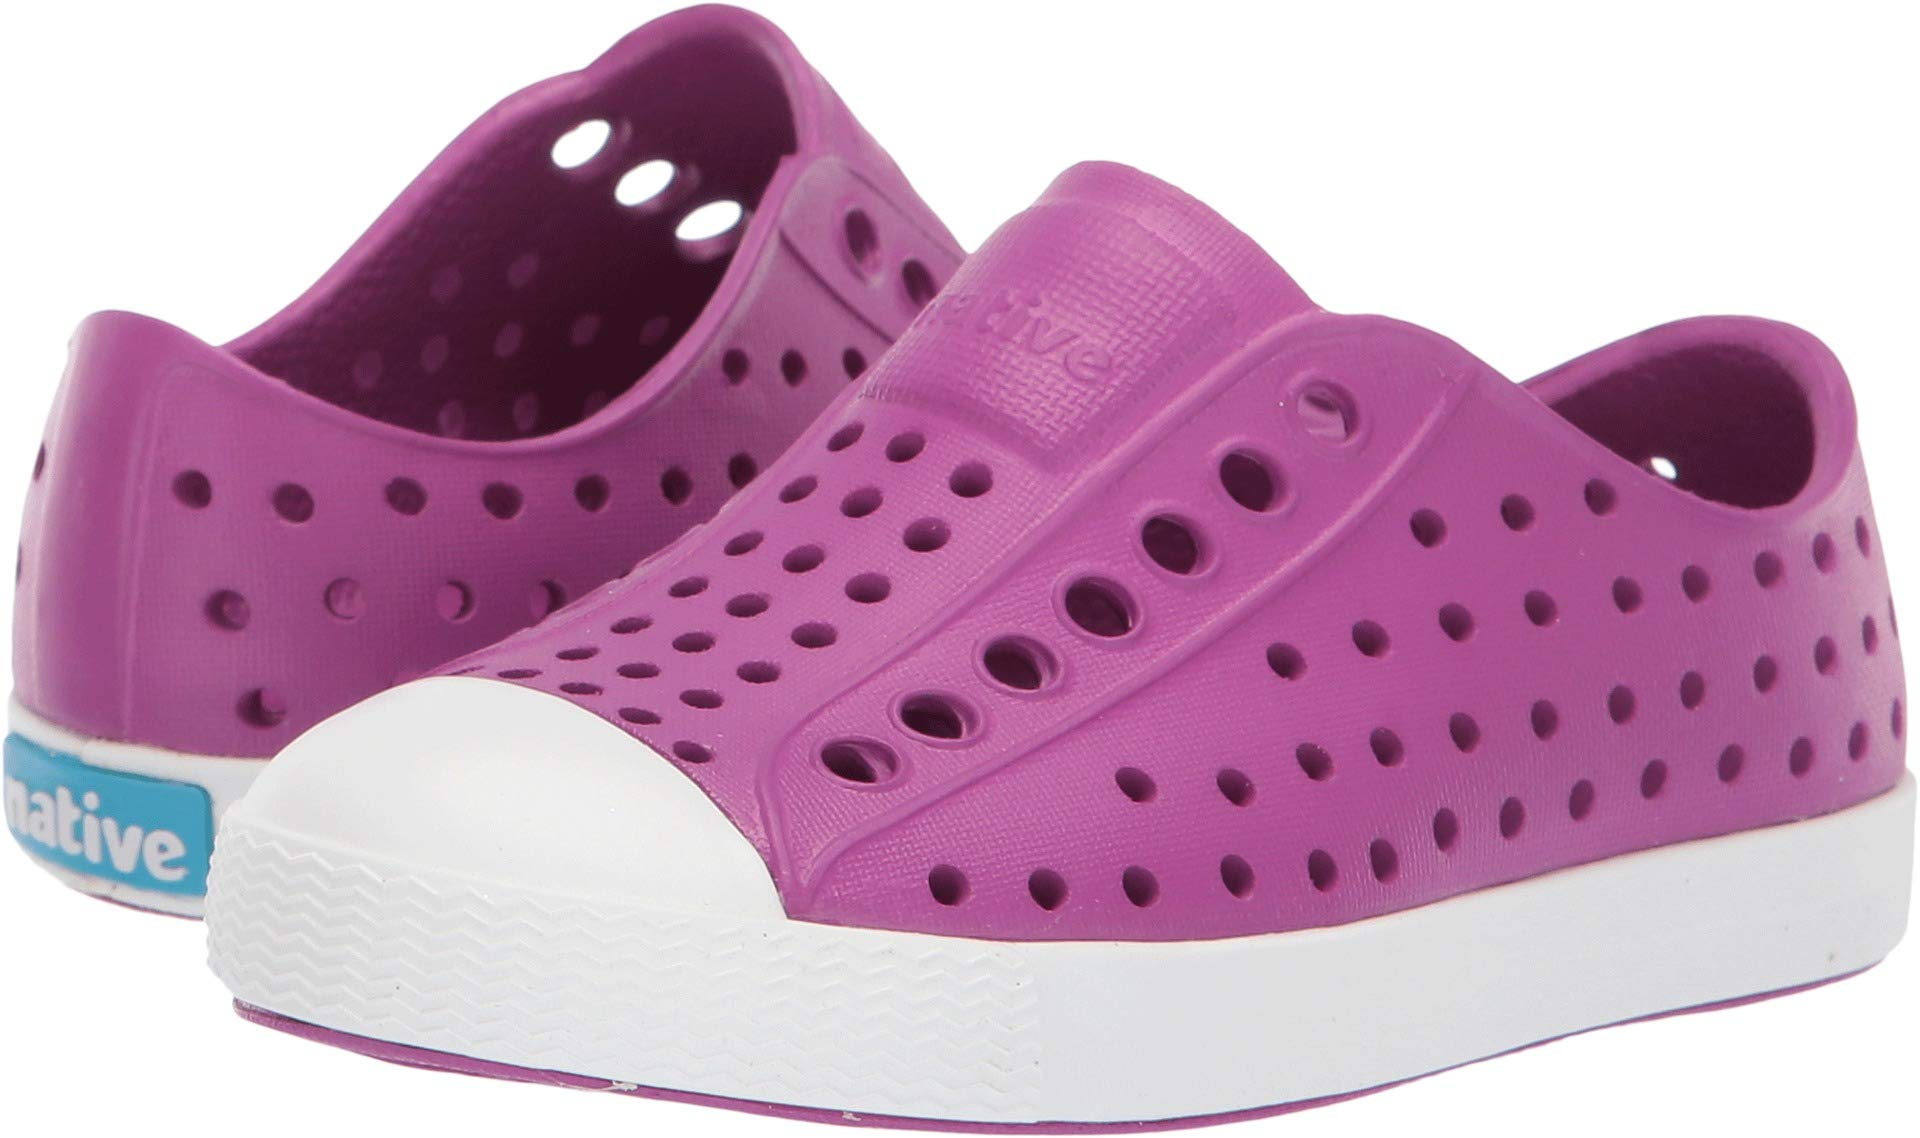 Native Kids Shoes Baby Girl's Jefferson (Toddler/Little Kid) Origami Purple/Shell White 4 M US Toddler